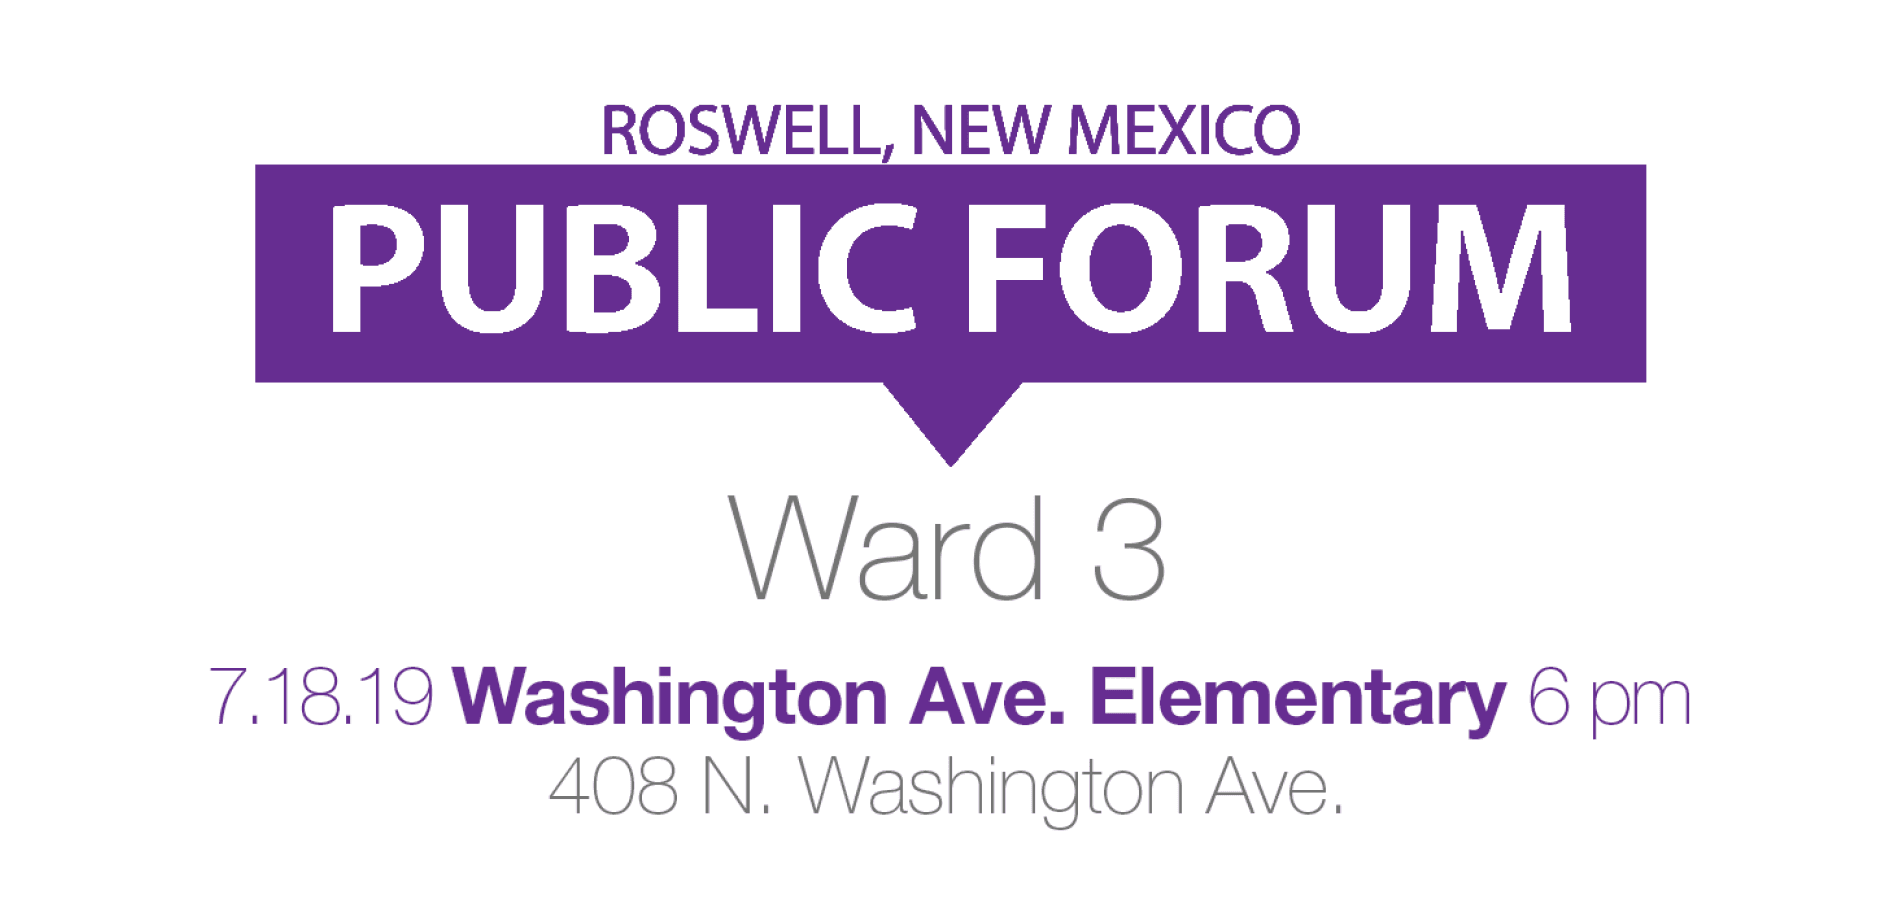 Public Forum 7-18-19 (website)